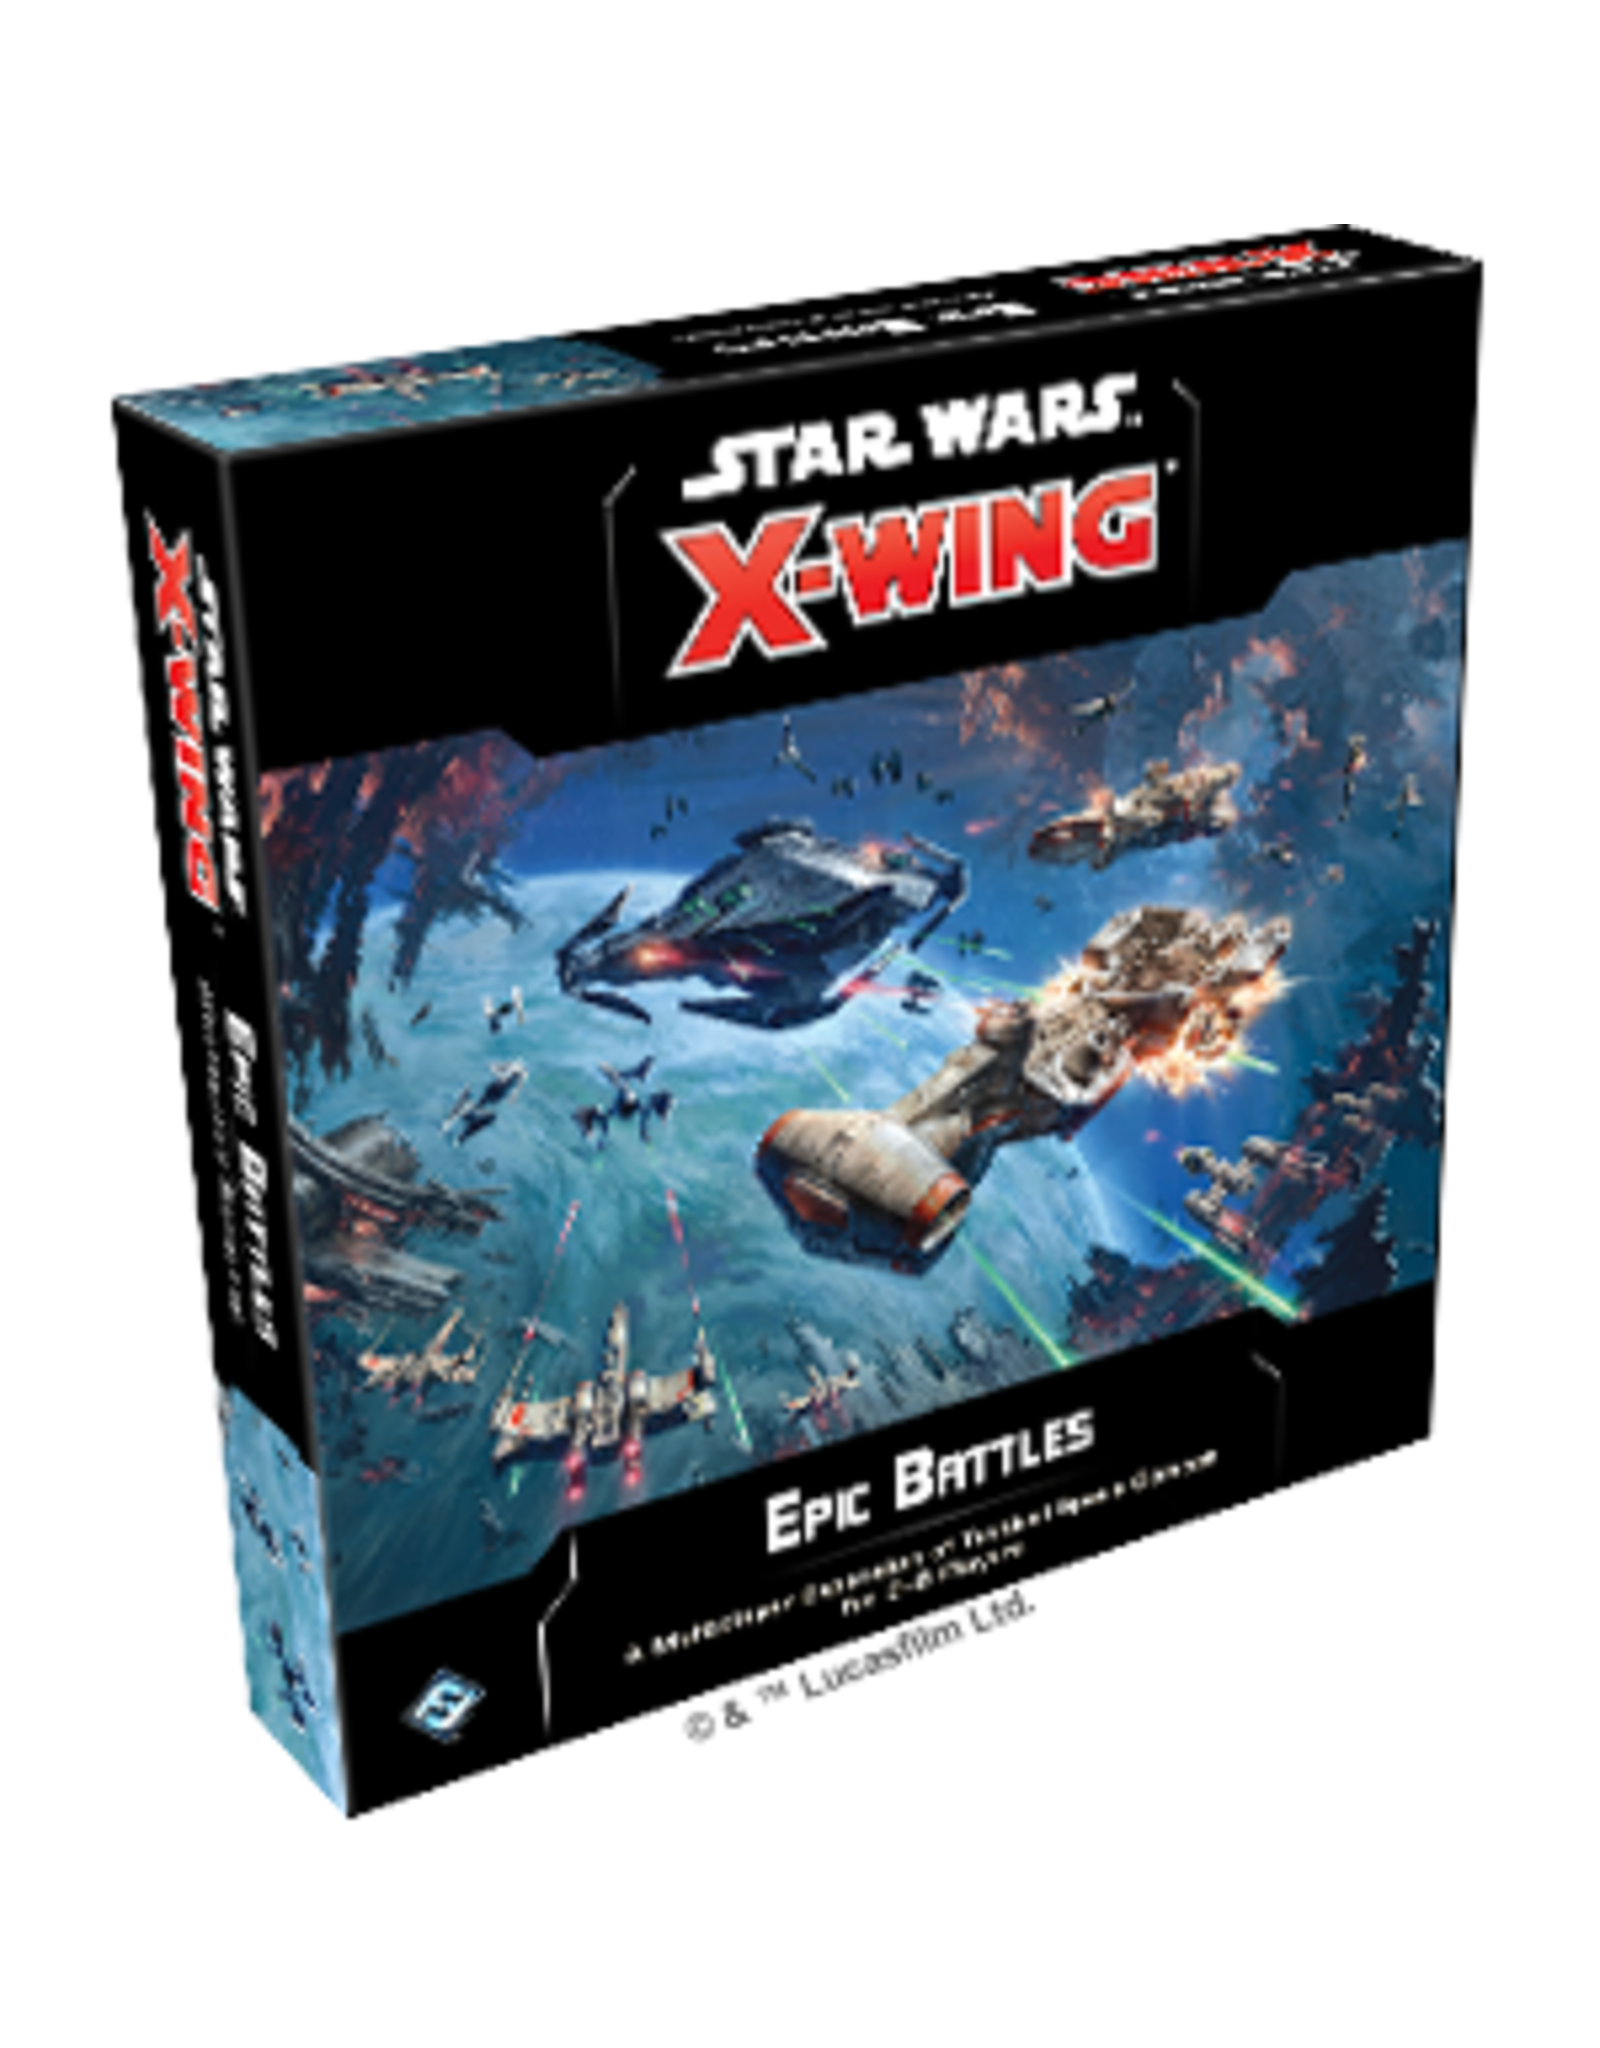 Fantasy Flight Games Star Wars X-Wing 2nd Edition: Epic Battles Multiplayer Expansion Pack